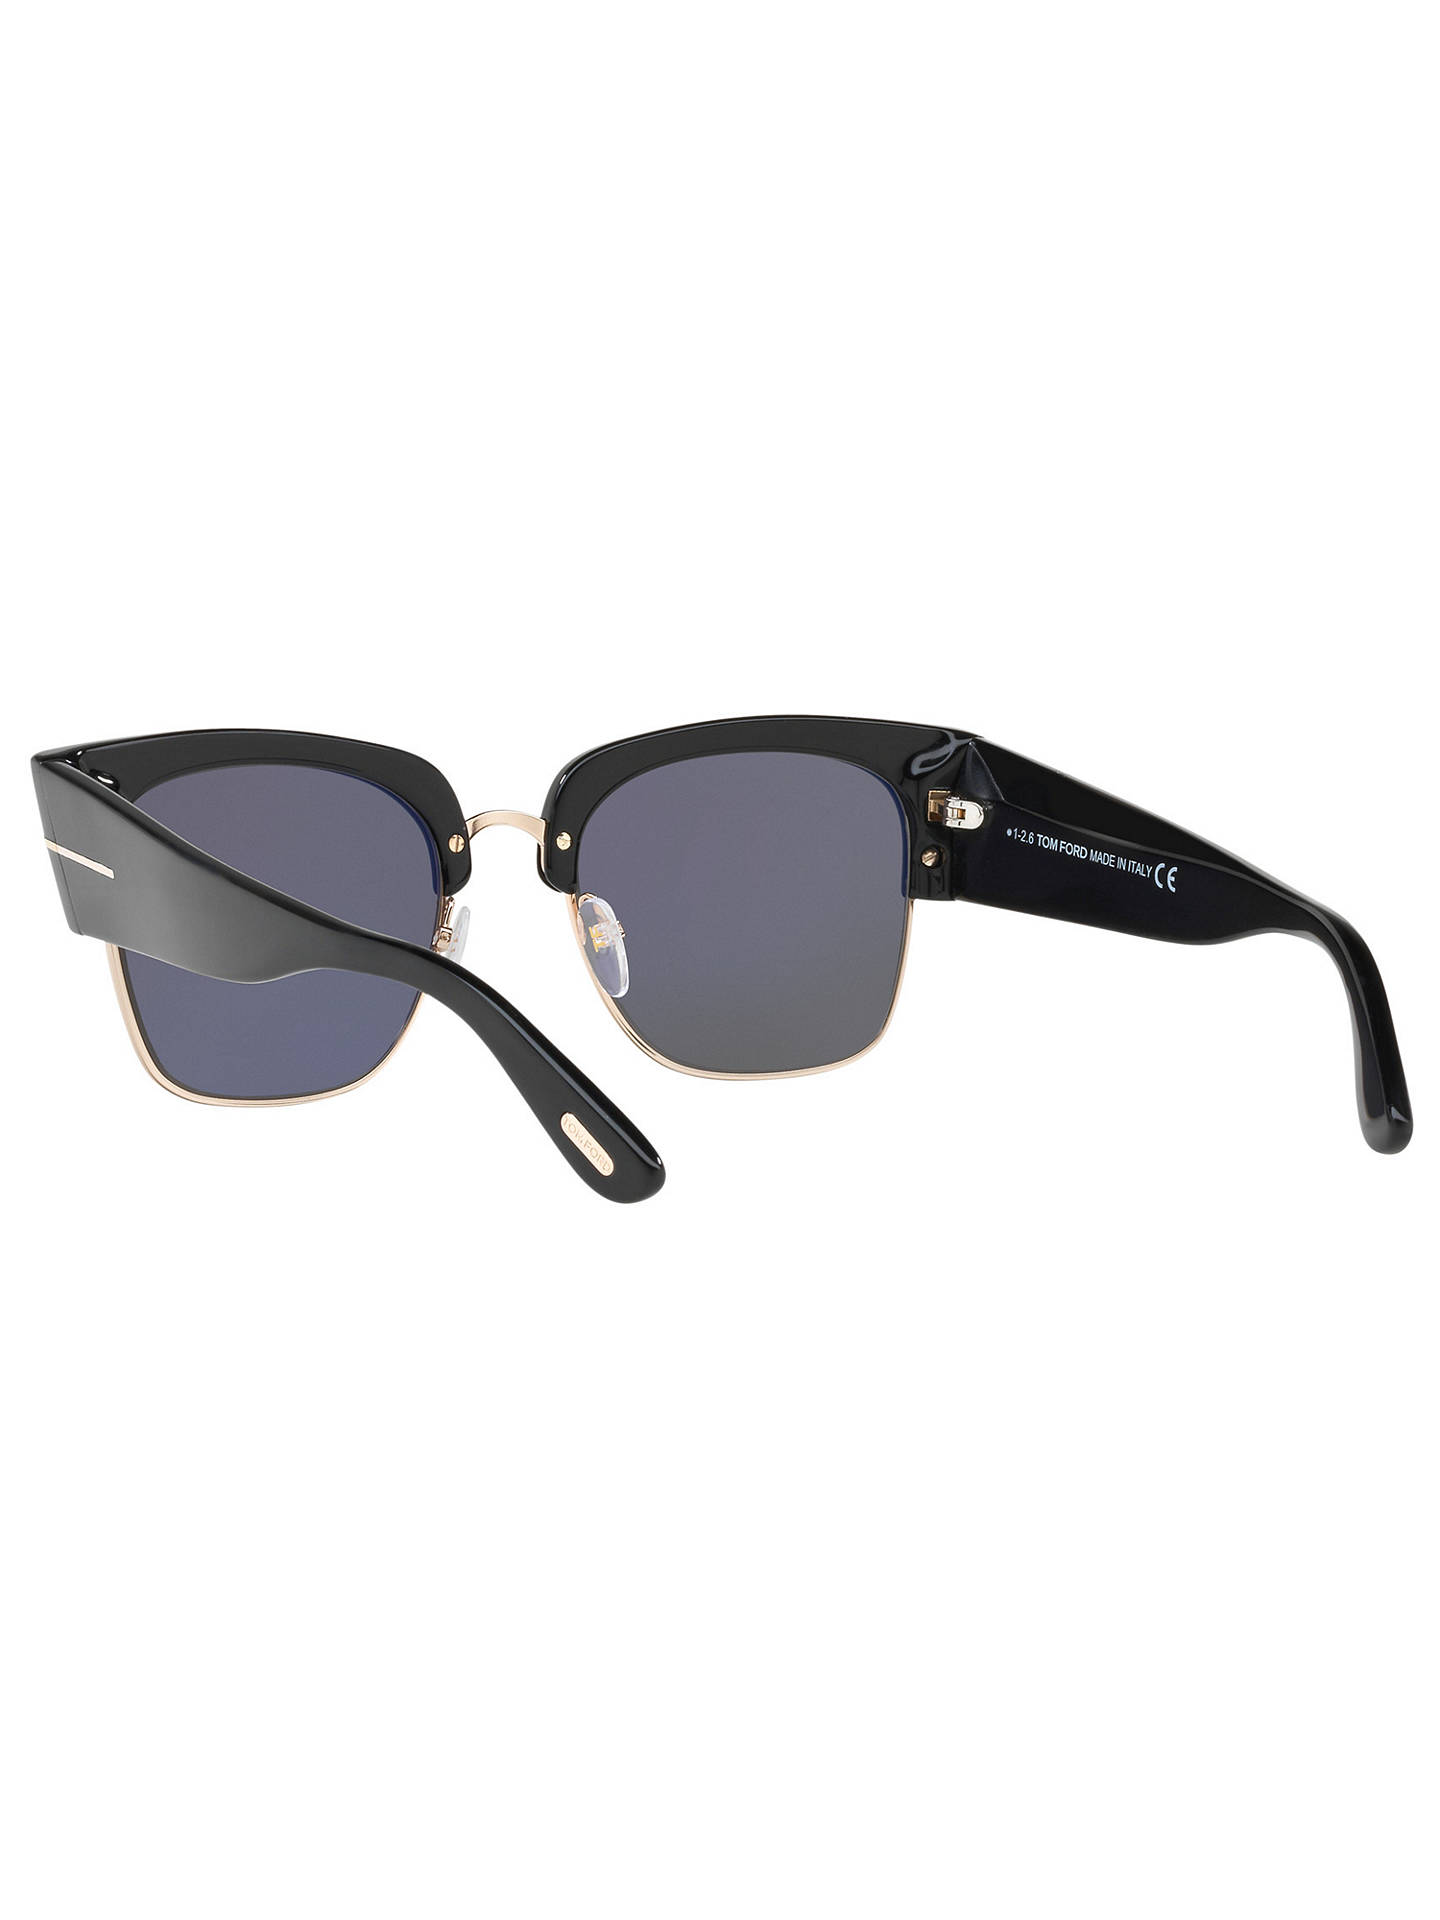 BuyTOM FORD FT0554 Dakota Square Sunglasses, Black/Smoke Online at johnlewis.com